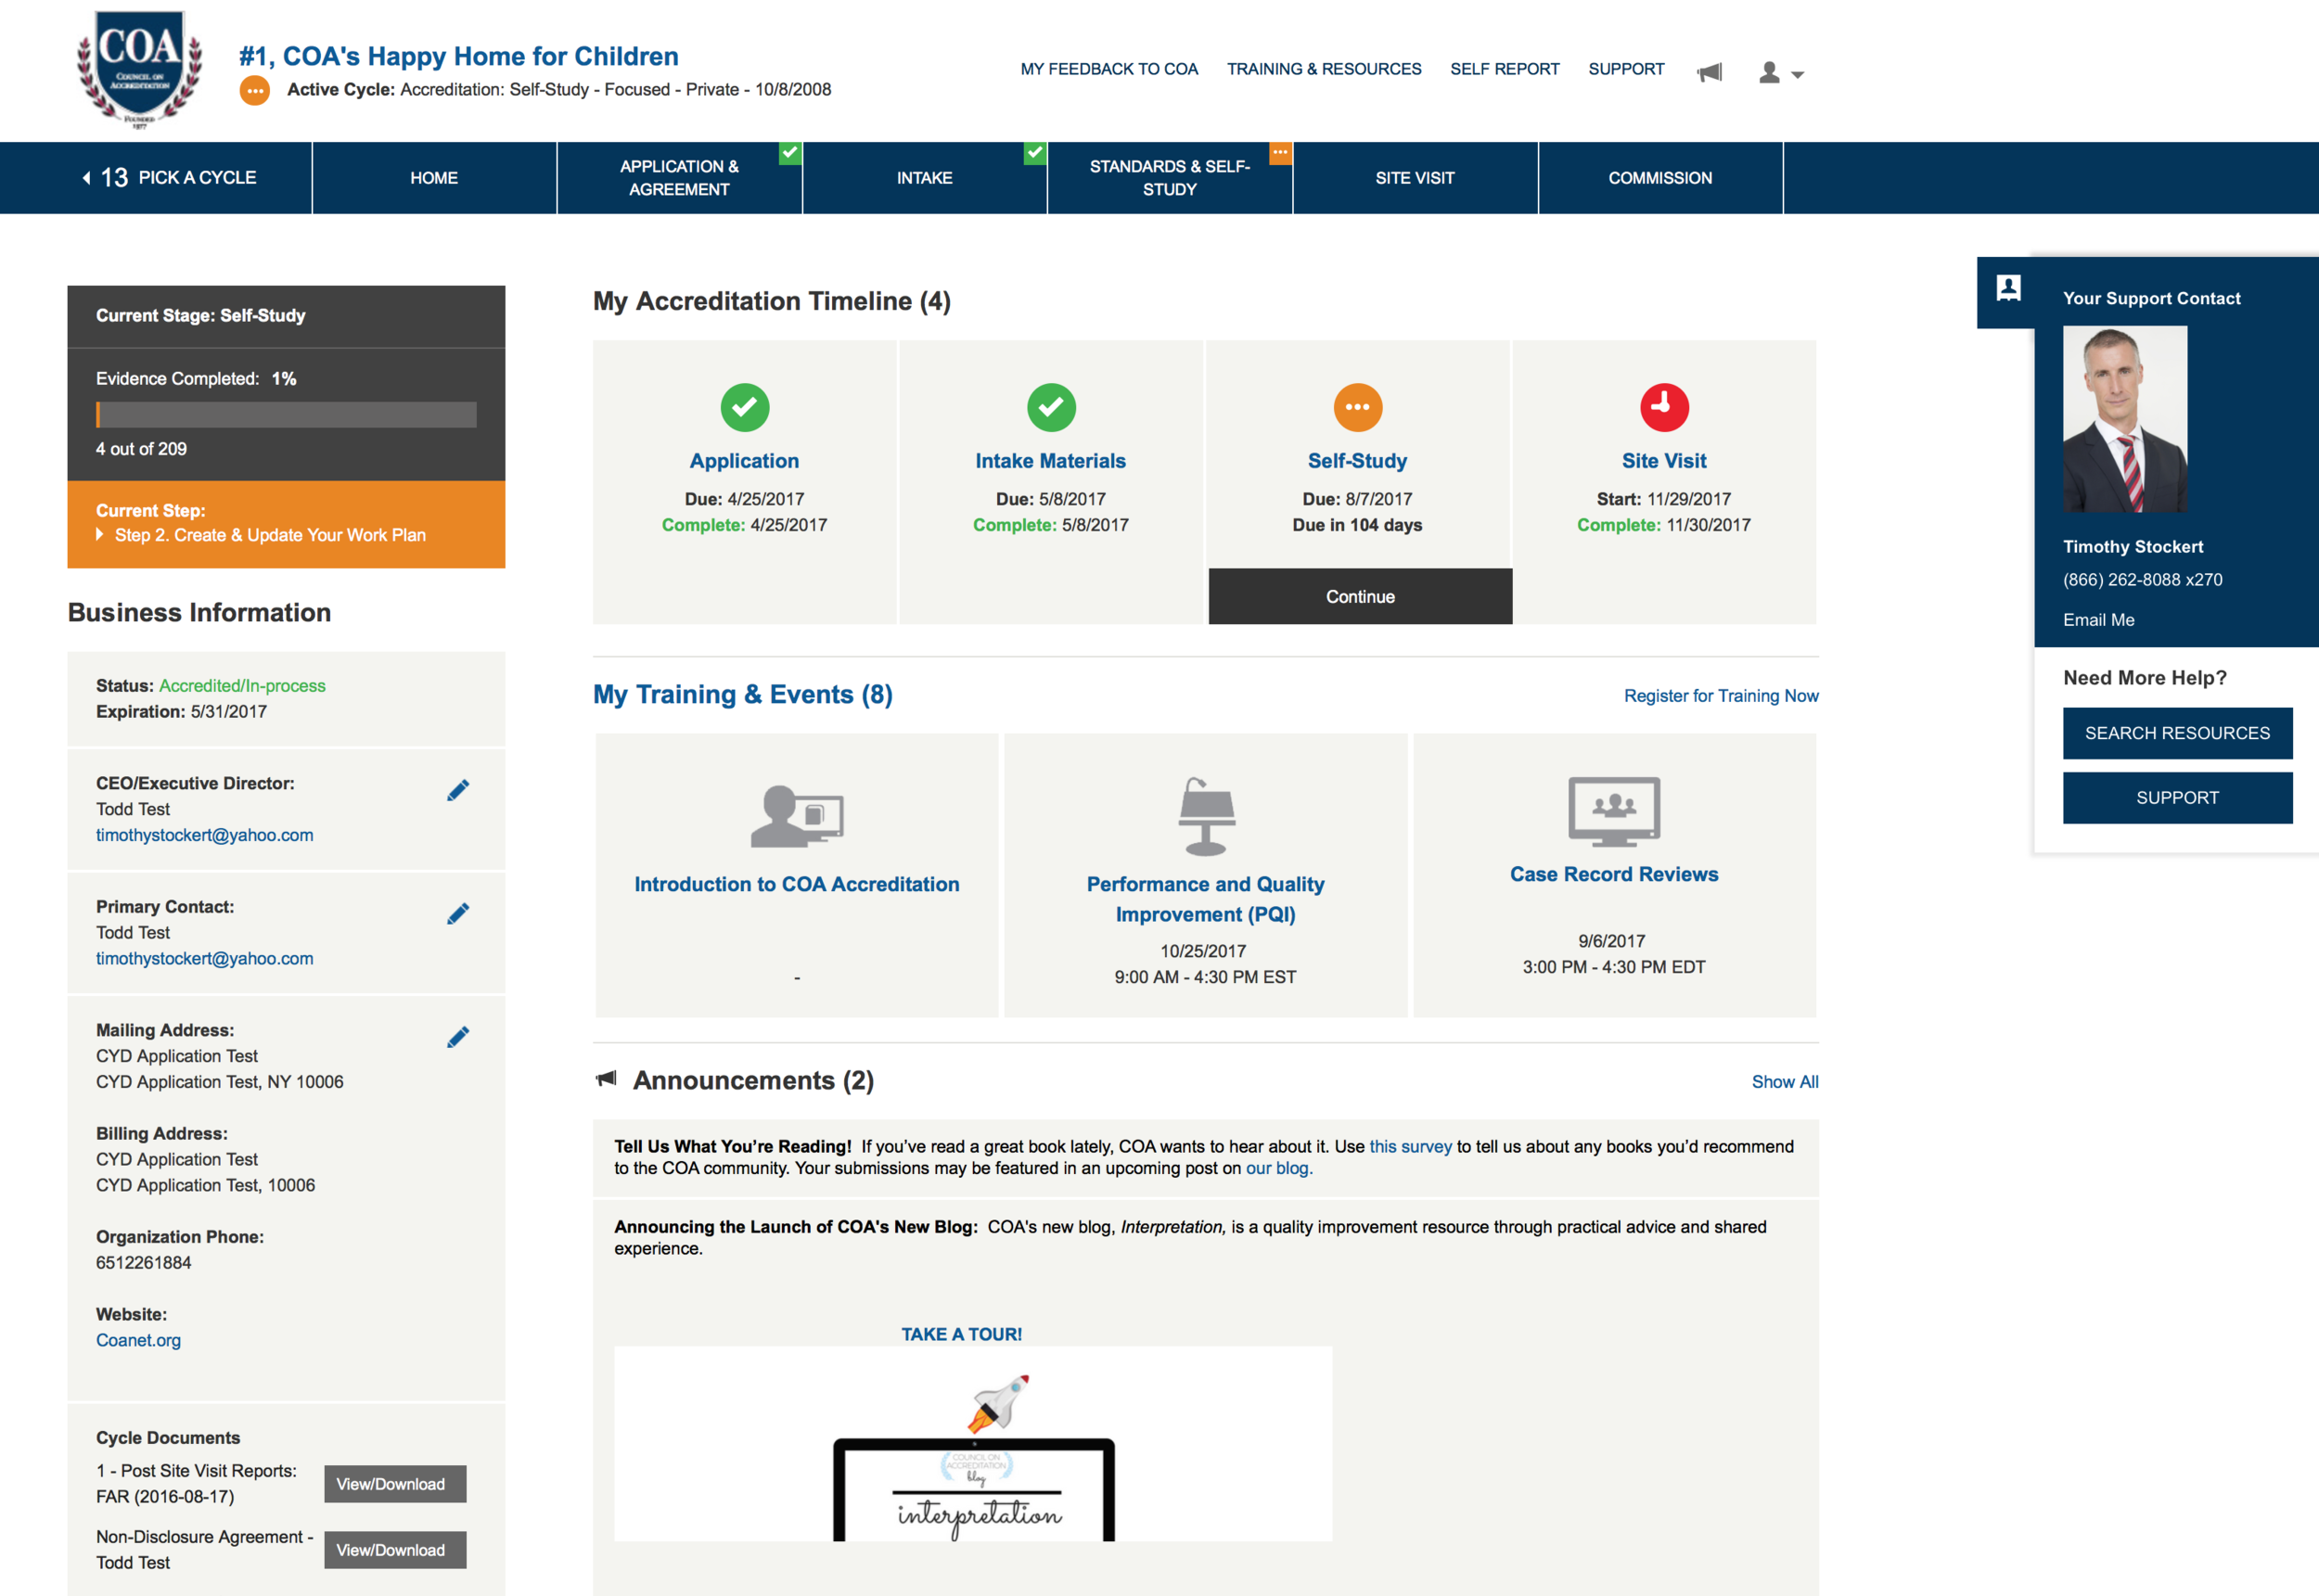 The redesigned MyCOA portal with a new UI launched in 2016.